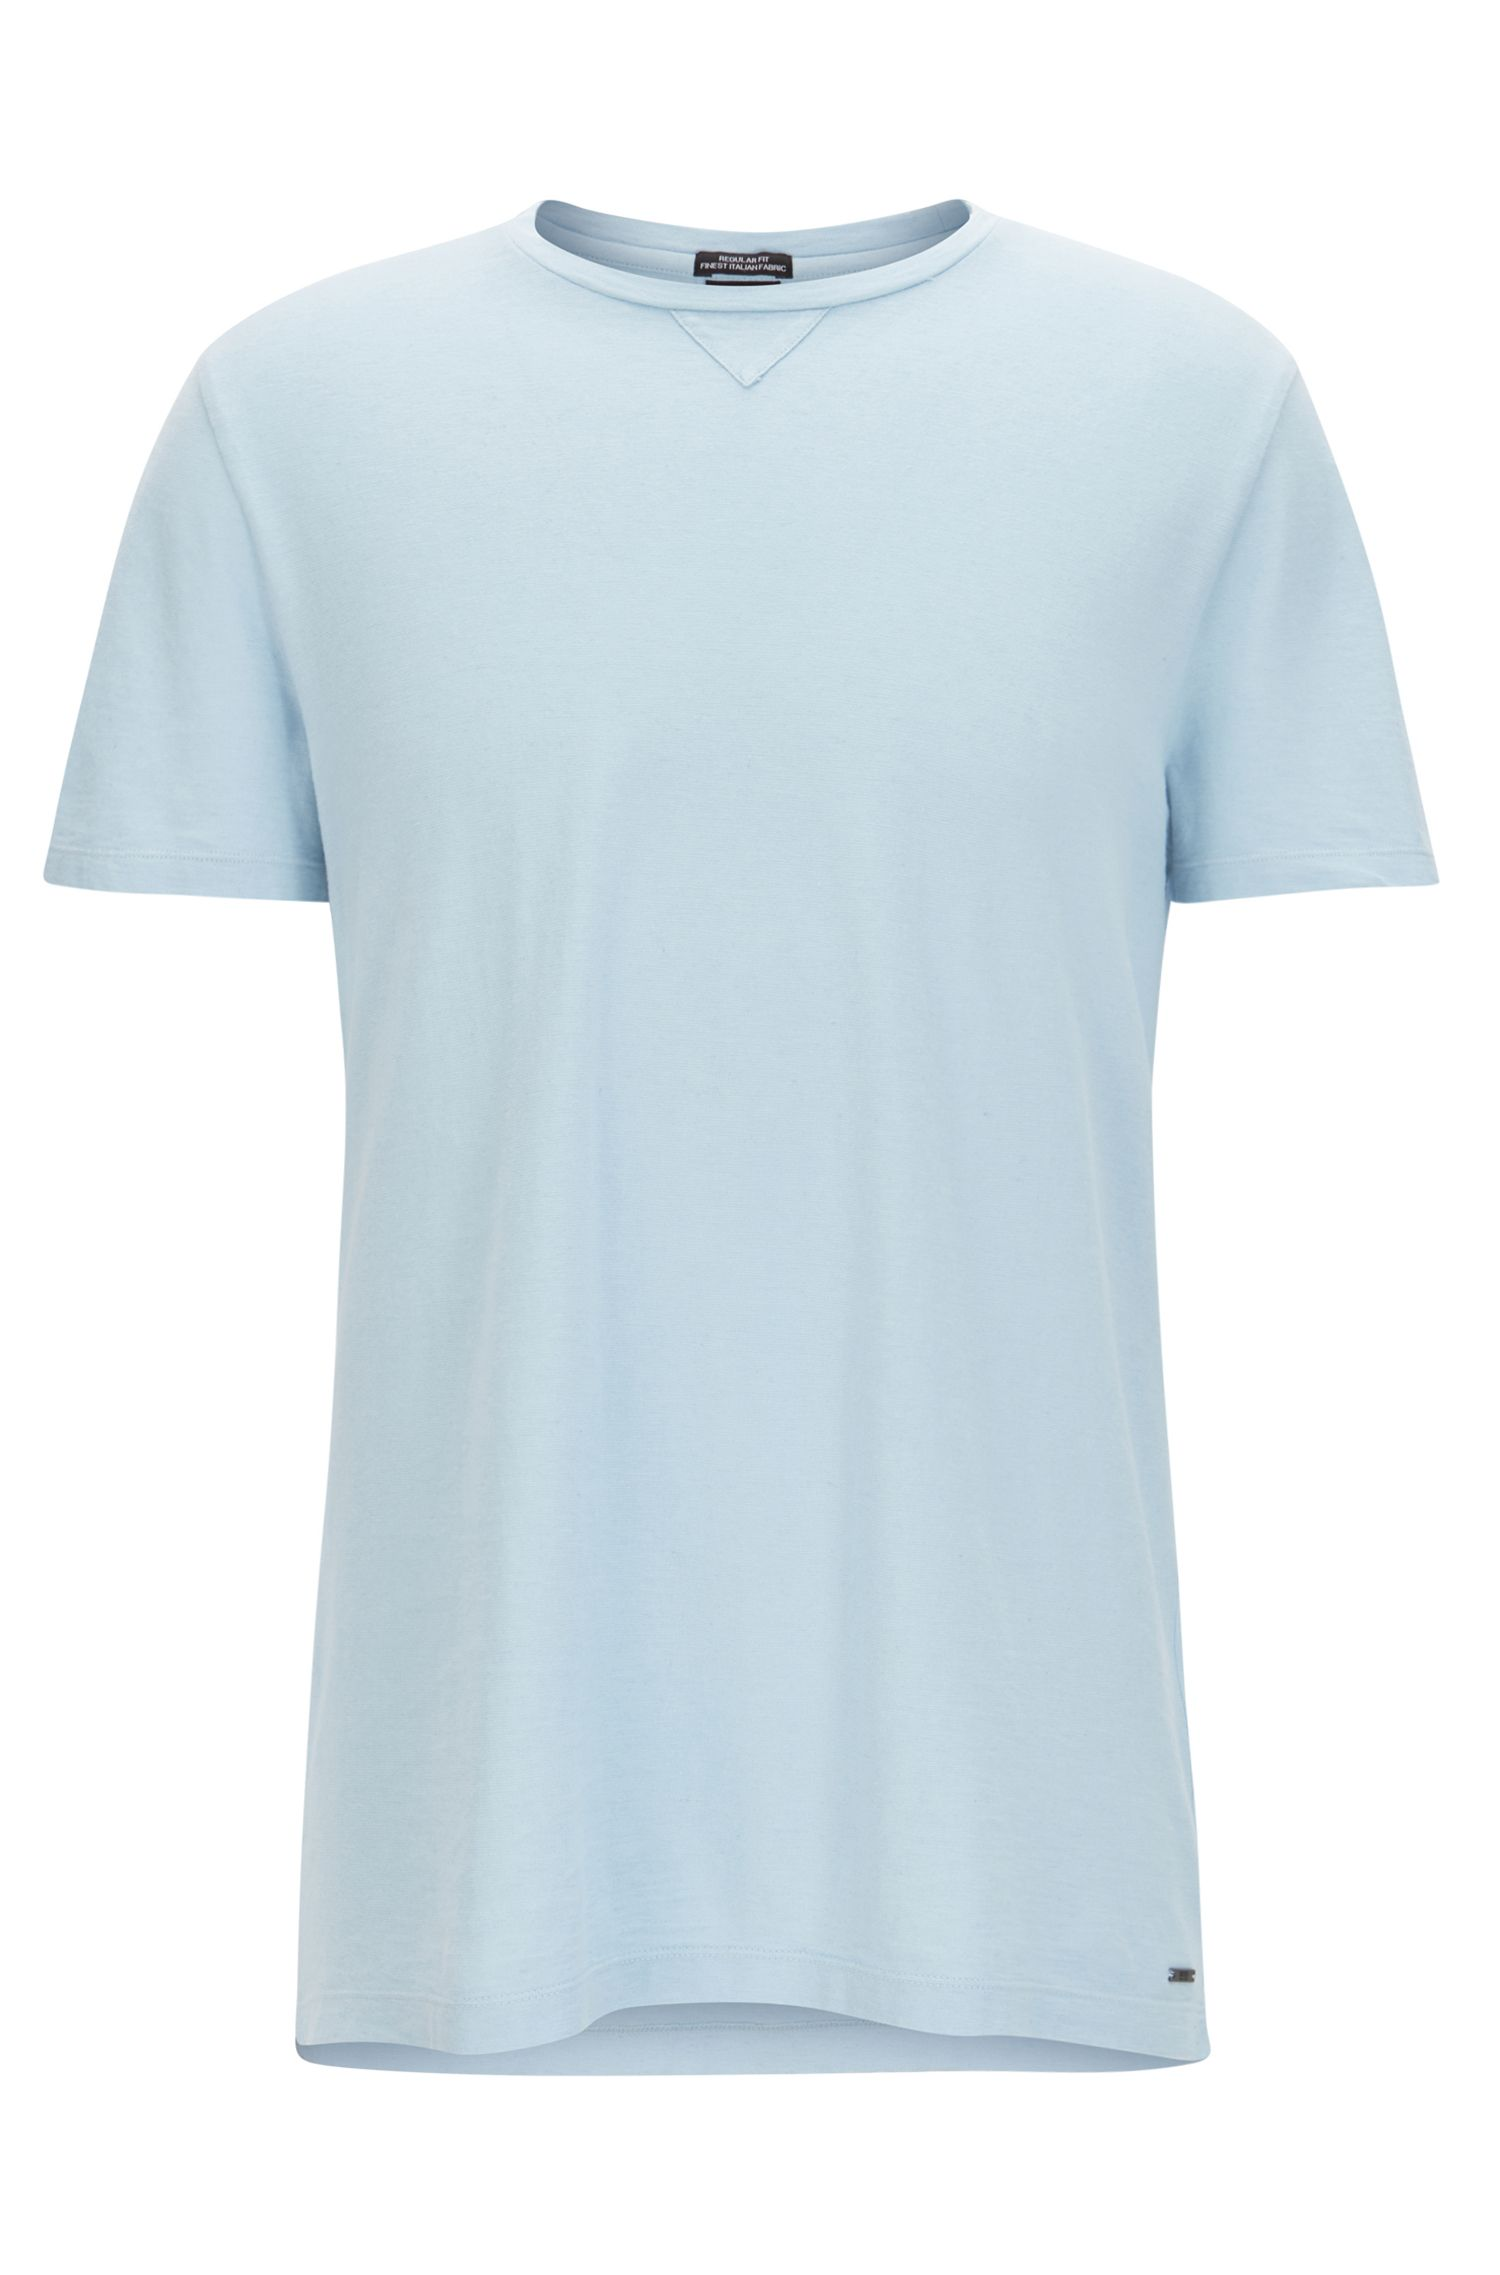 Crew-neck T-shirt in an Italian cotton blend